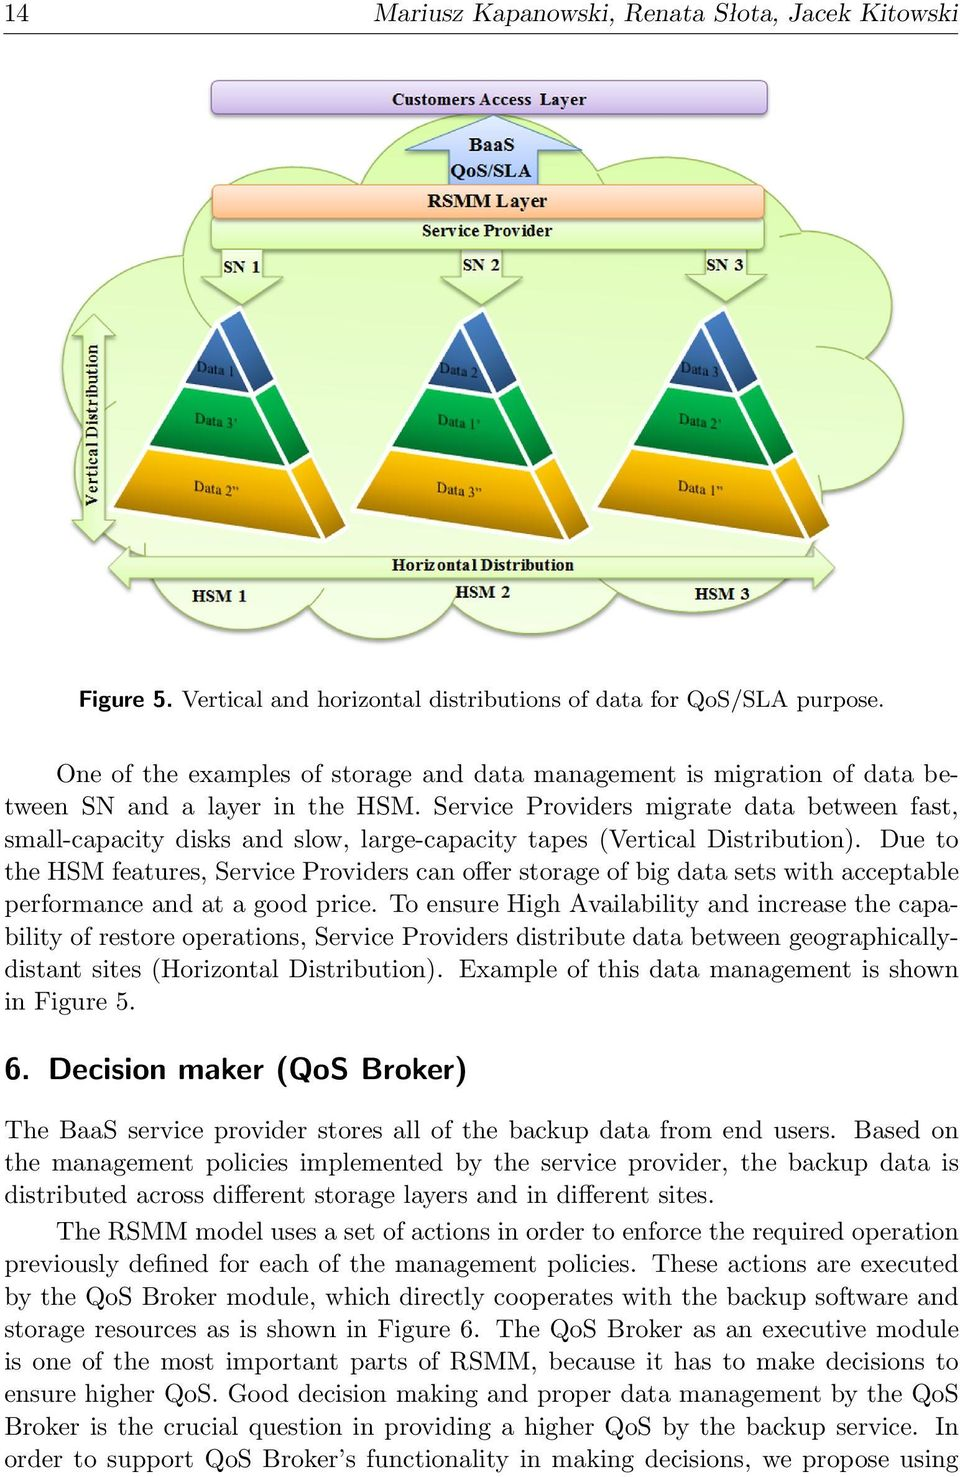 Service Providers migrate data between fast, small-capacity disks and slow, large-capacity tapes (Vertical Distribution).